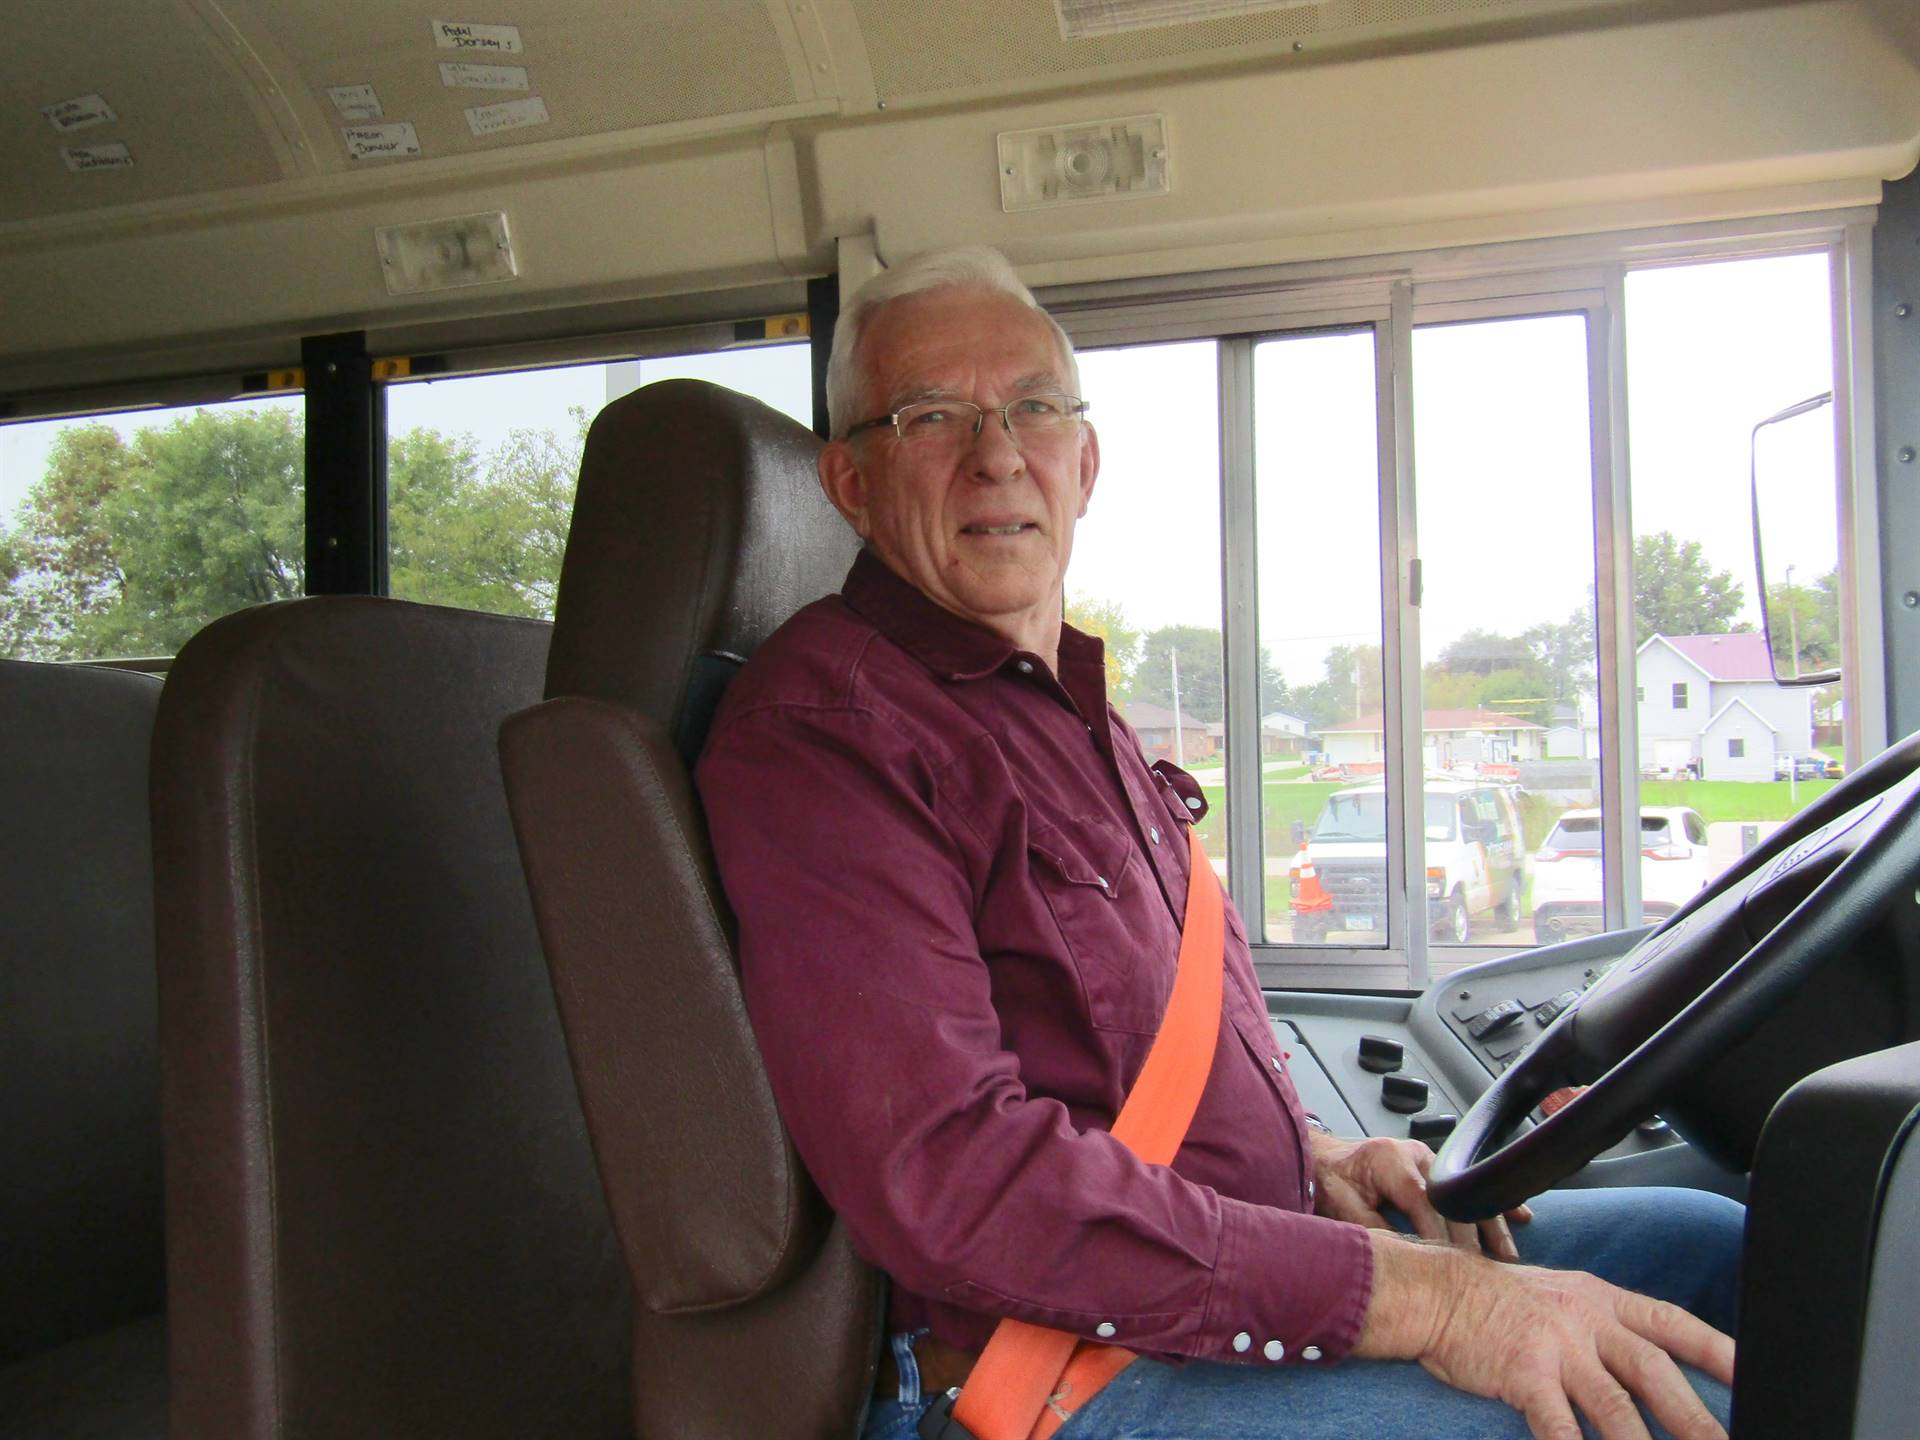 A substitute bus driver fills in for a route bus driver